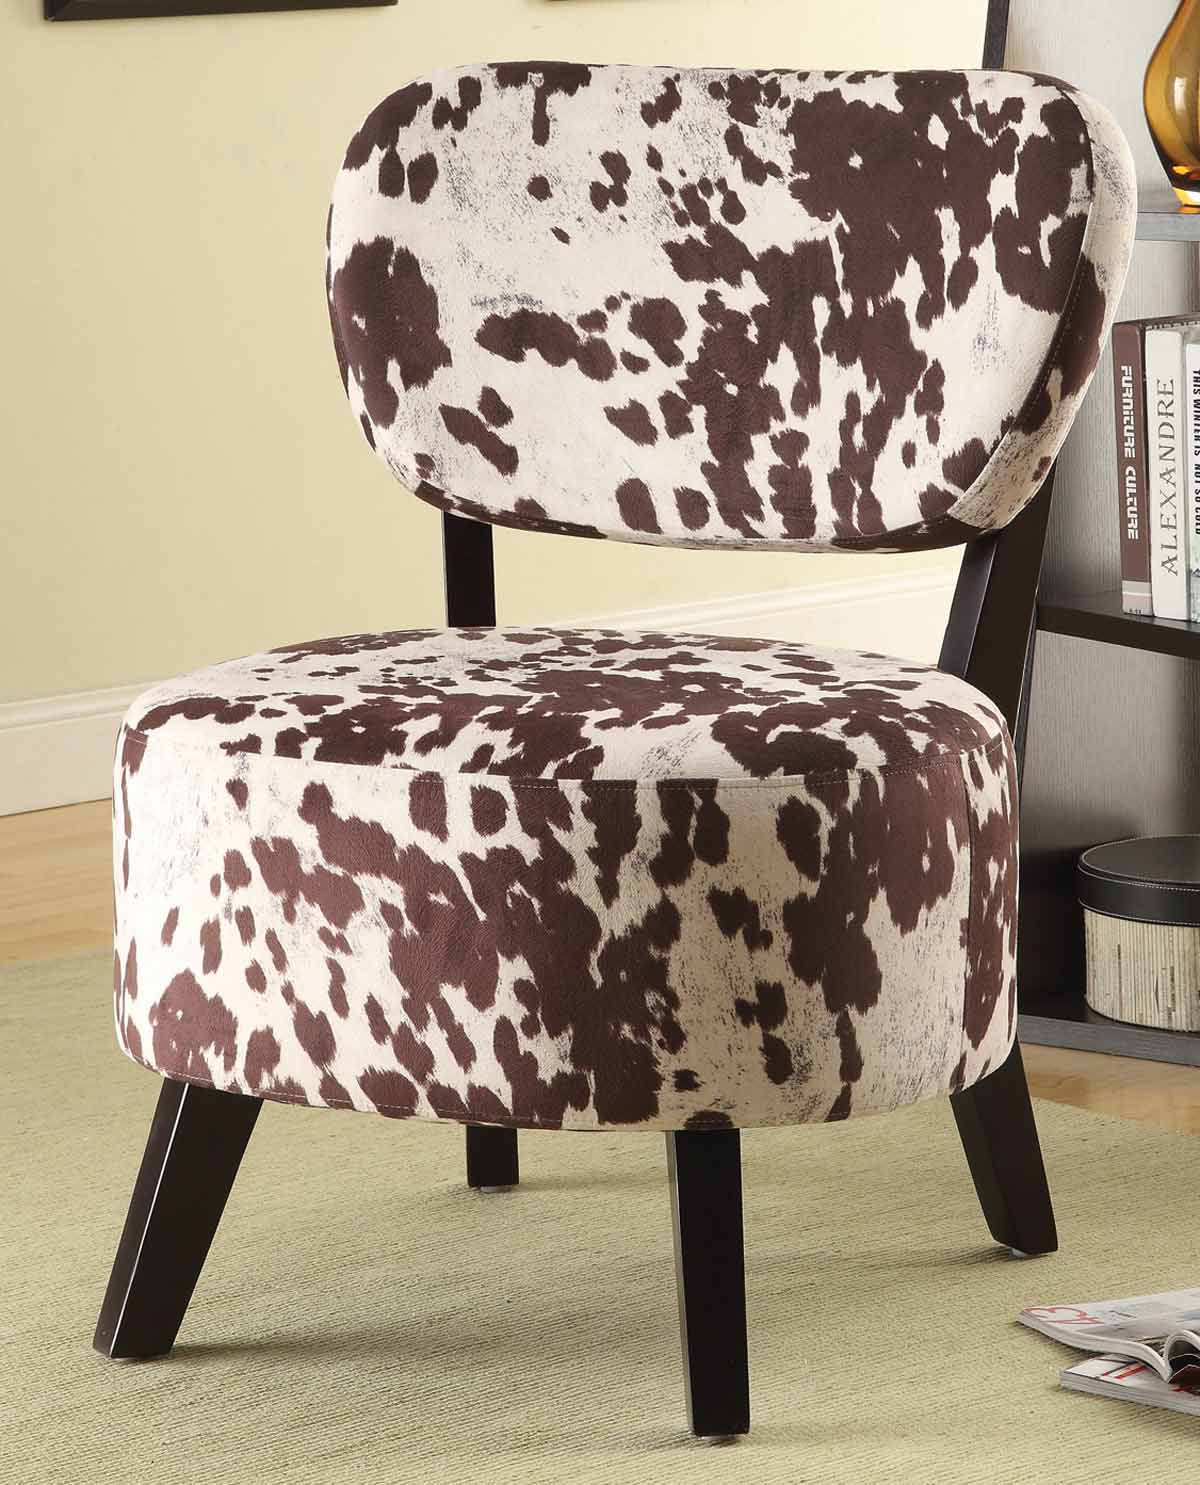 Coaster 902226 Accent Chair - Brown/White Cow Print